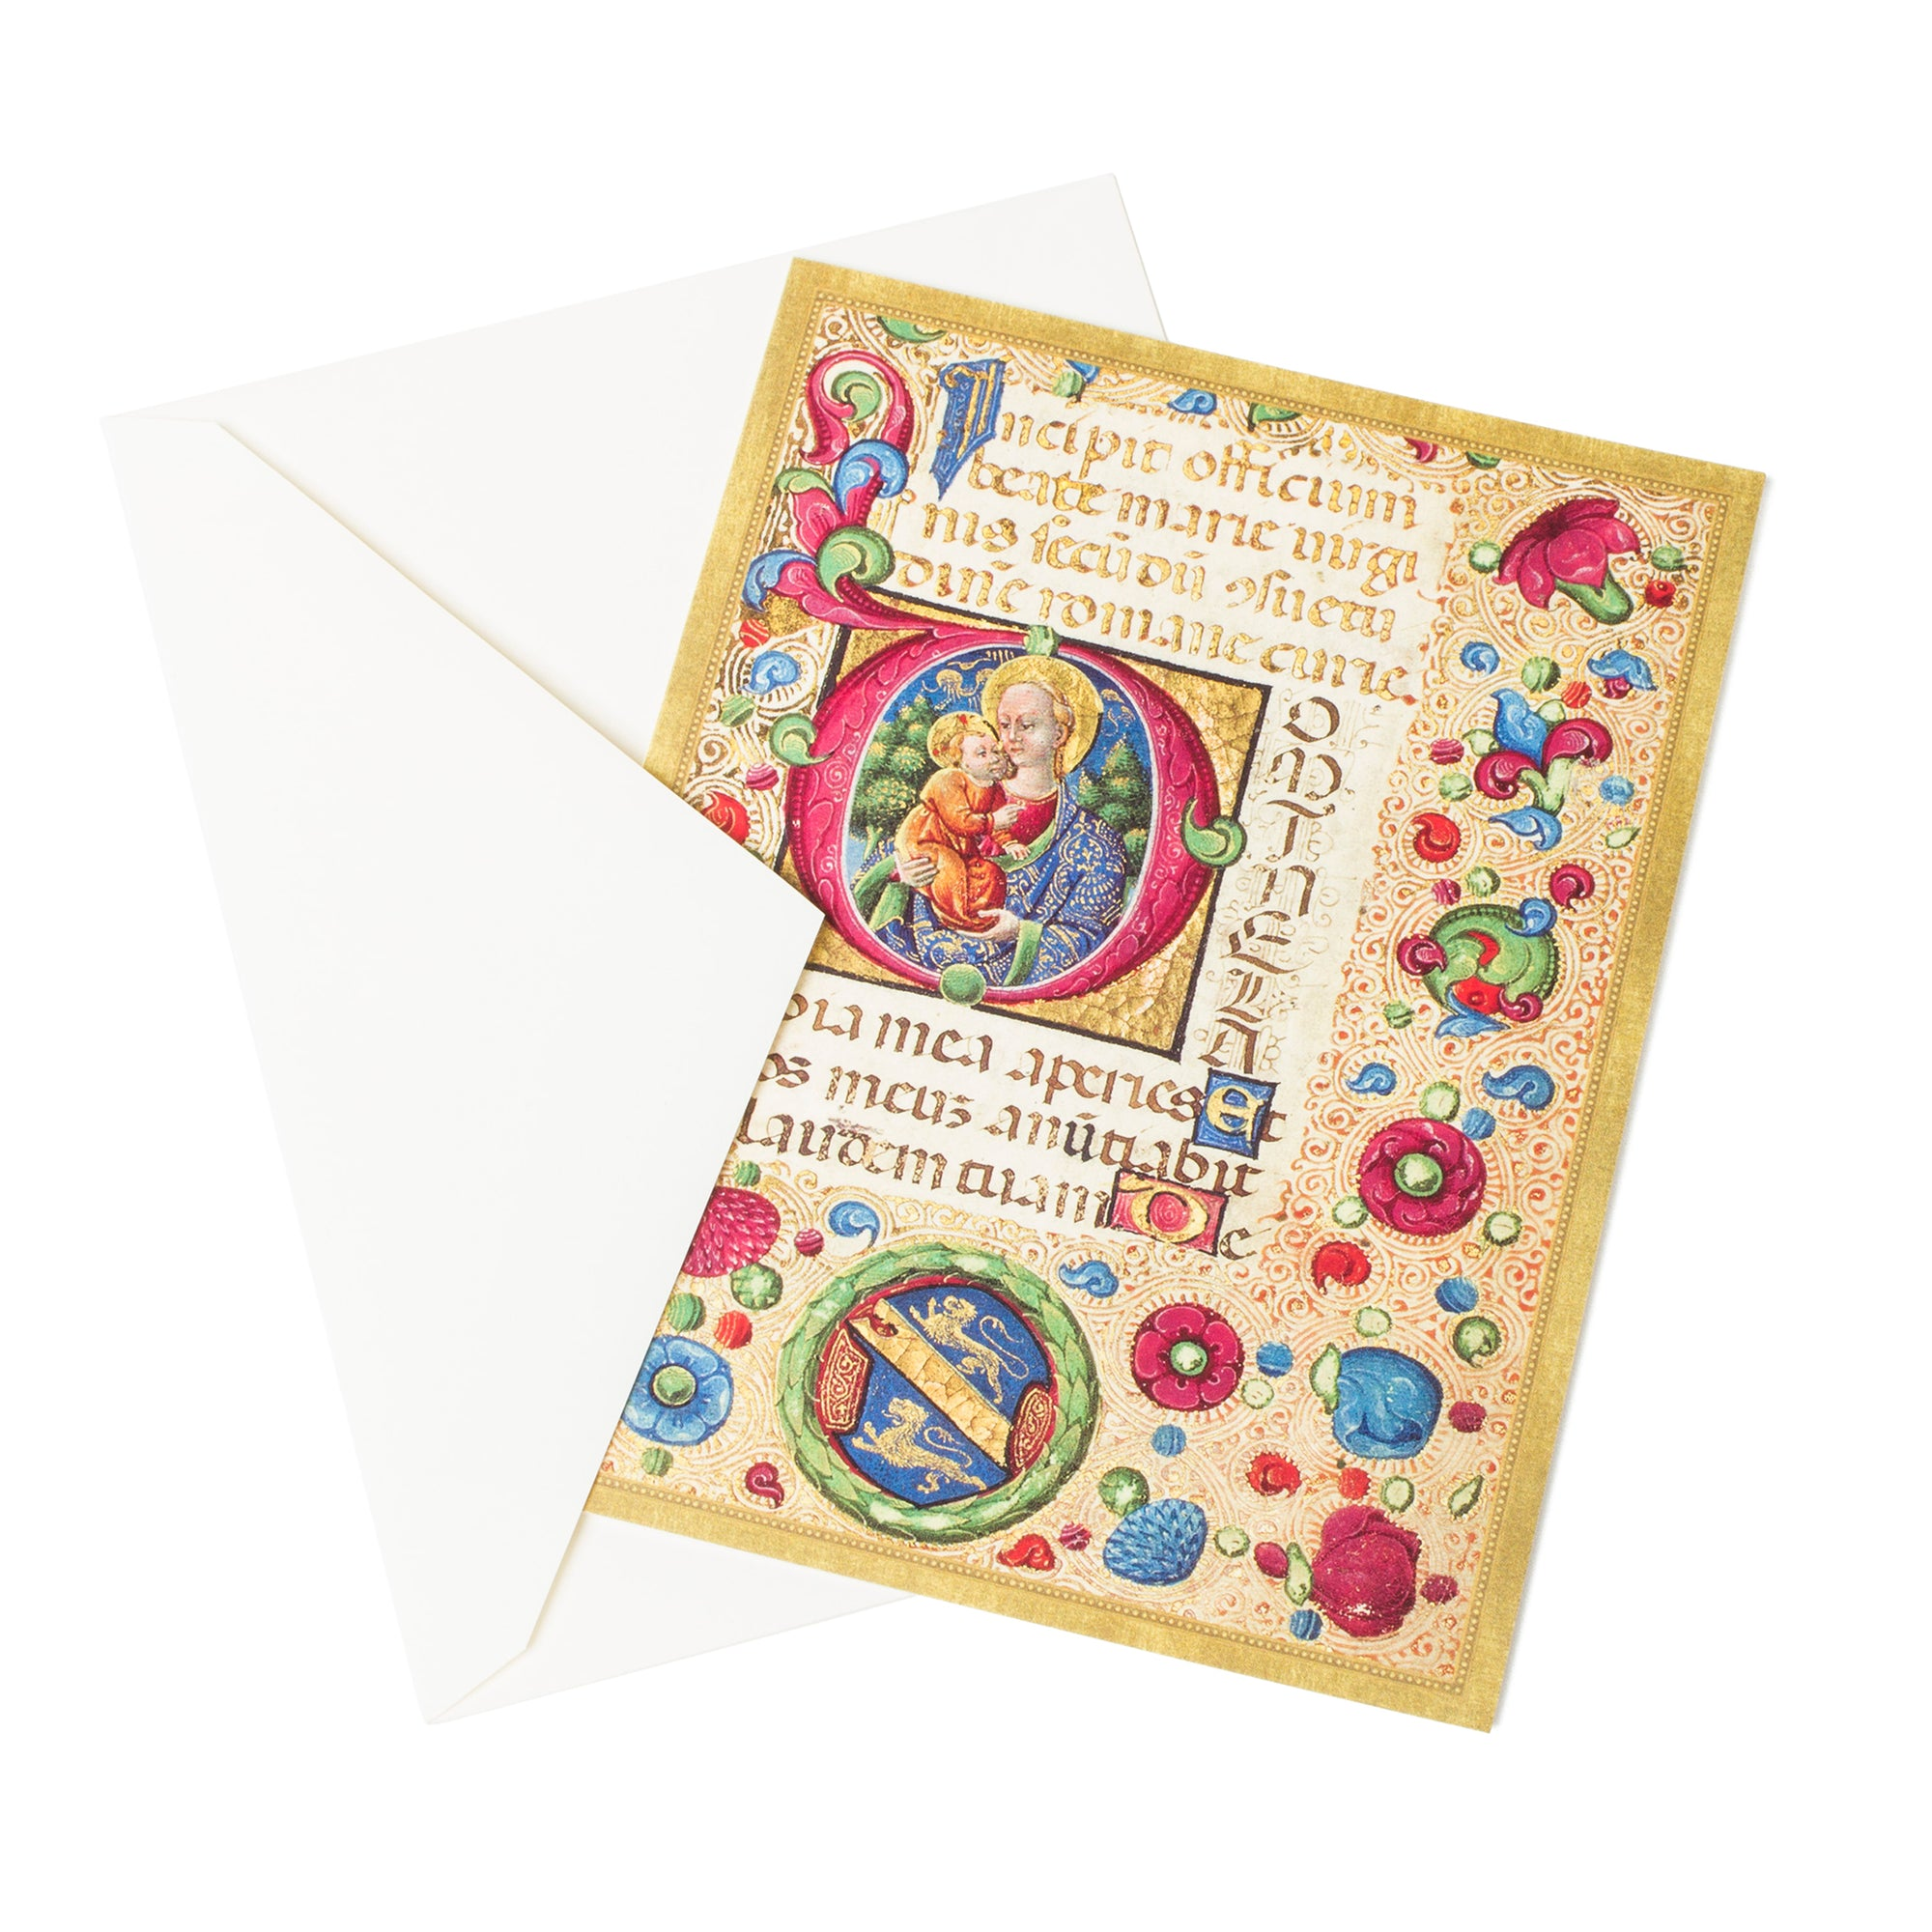 Getty Boxed Christmas Cards - Virgin and Child - The Getty Store